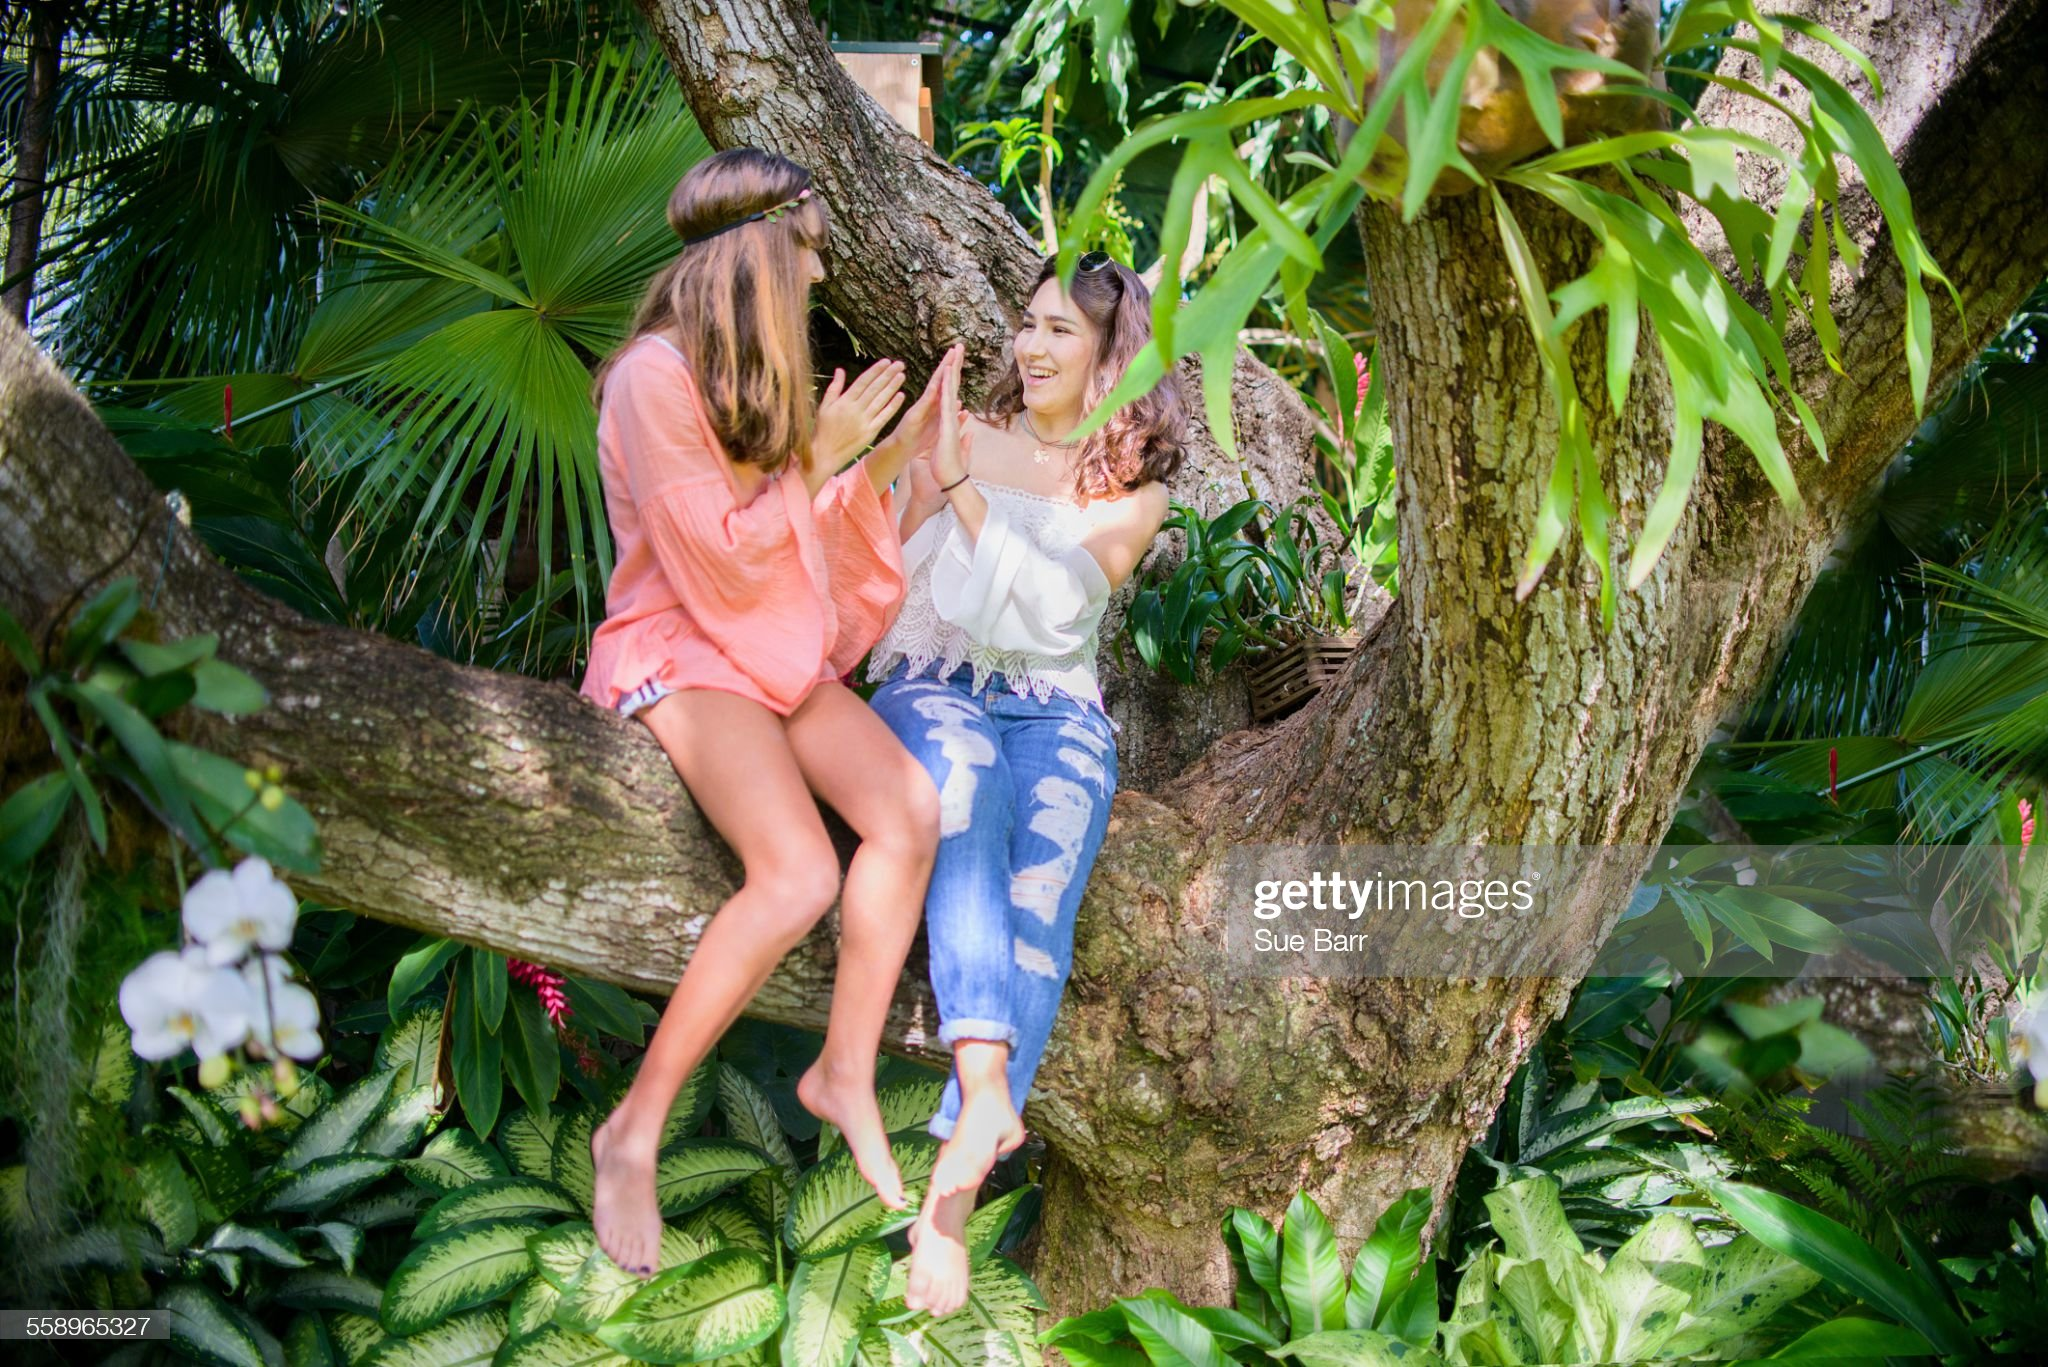 https://media.gettyimages.com/photos/two-young-female-friends-playing-clapping-game-in-tree-picture-id558965327?s=2048x2048